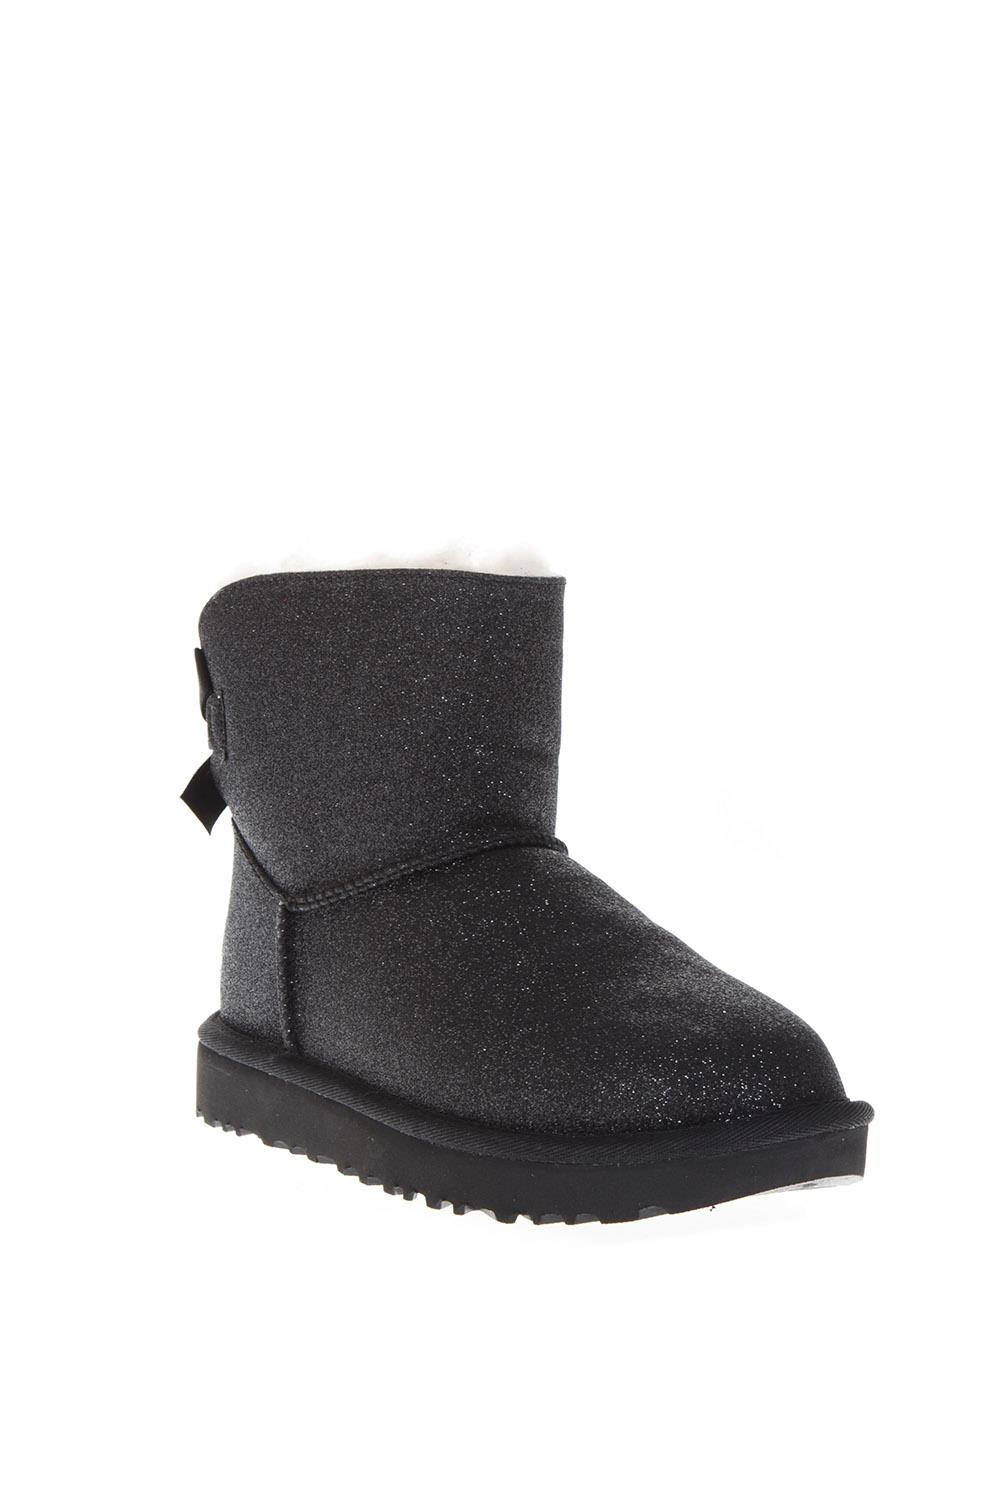 Black Sparkle Ugg Shoes